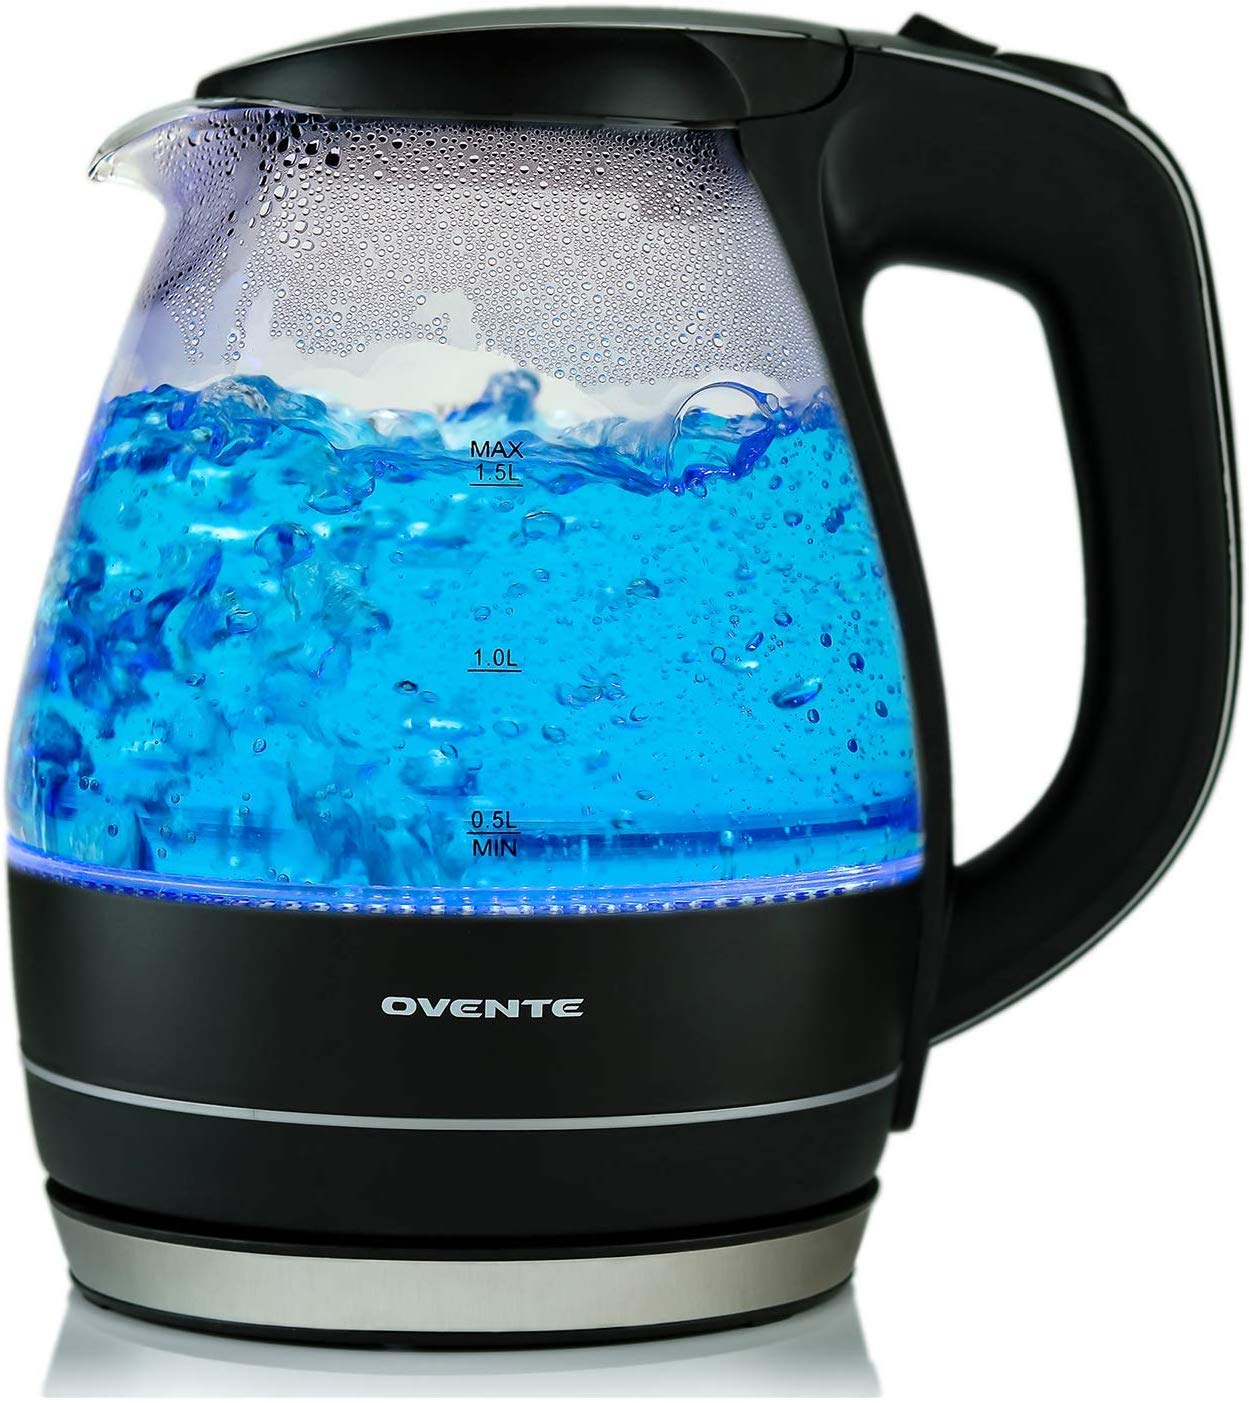 Ovente 1.5 liter glass electric kettle